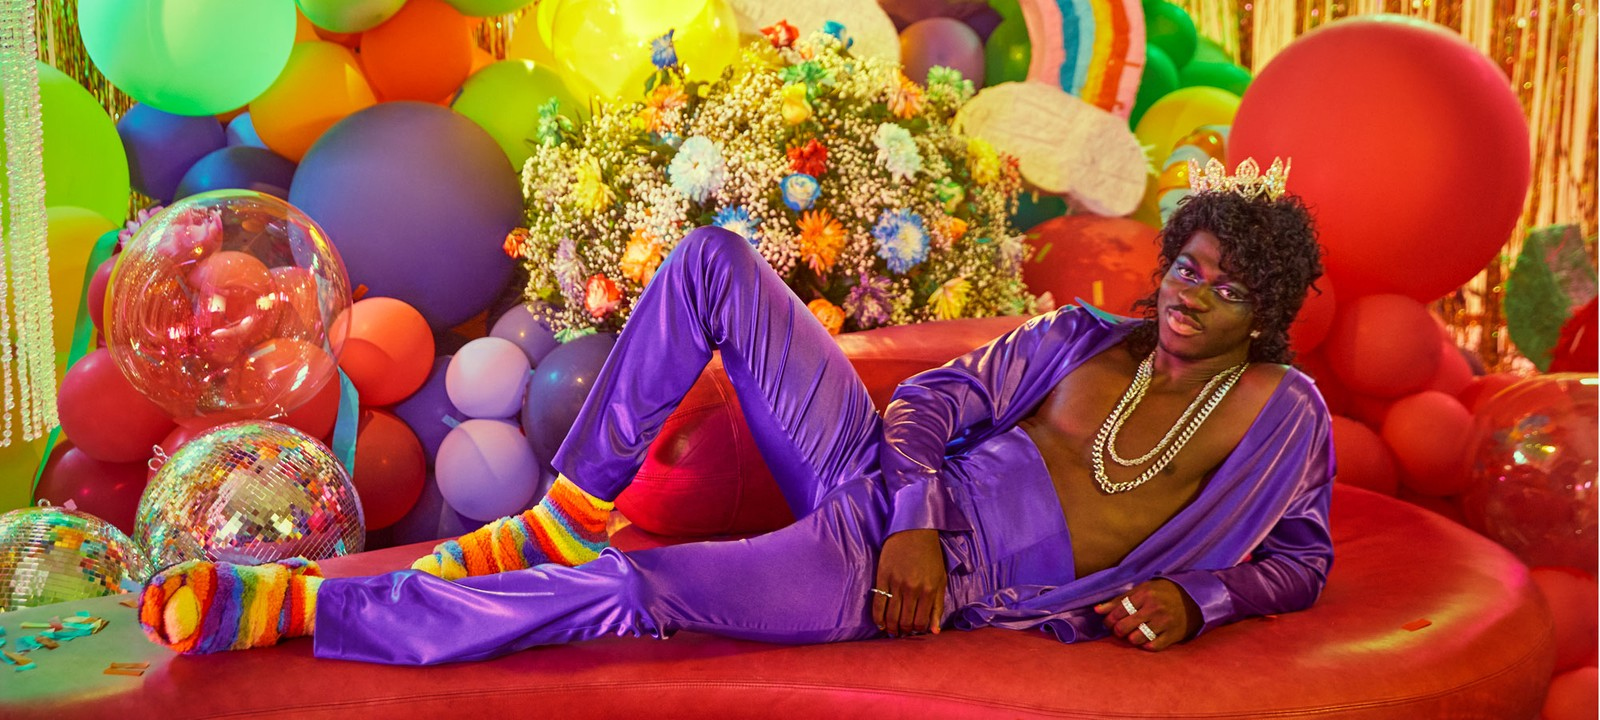 ugg reveals all-gender capsule collection to celebrate pride month